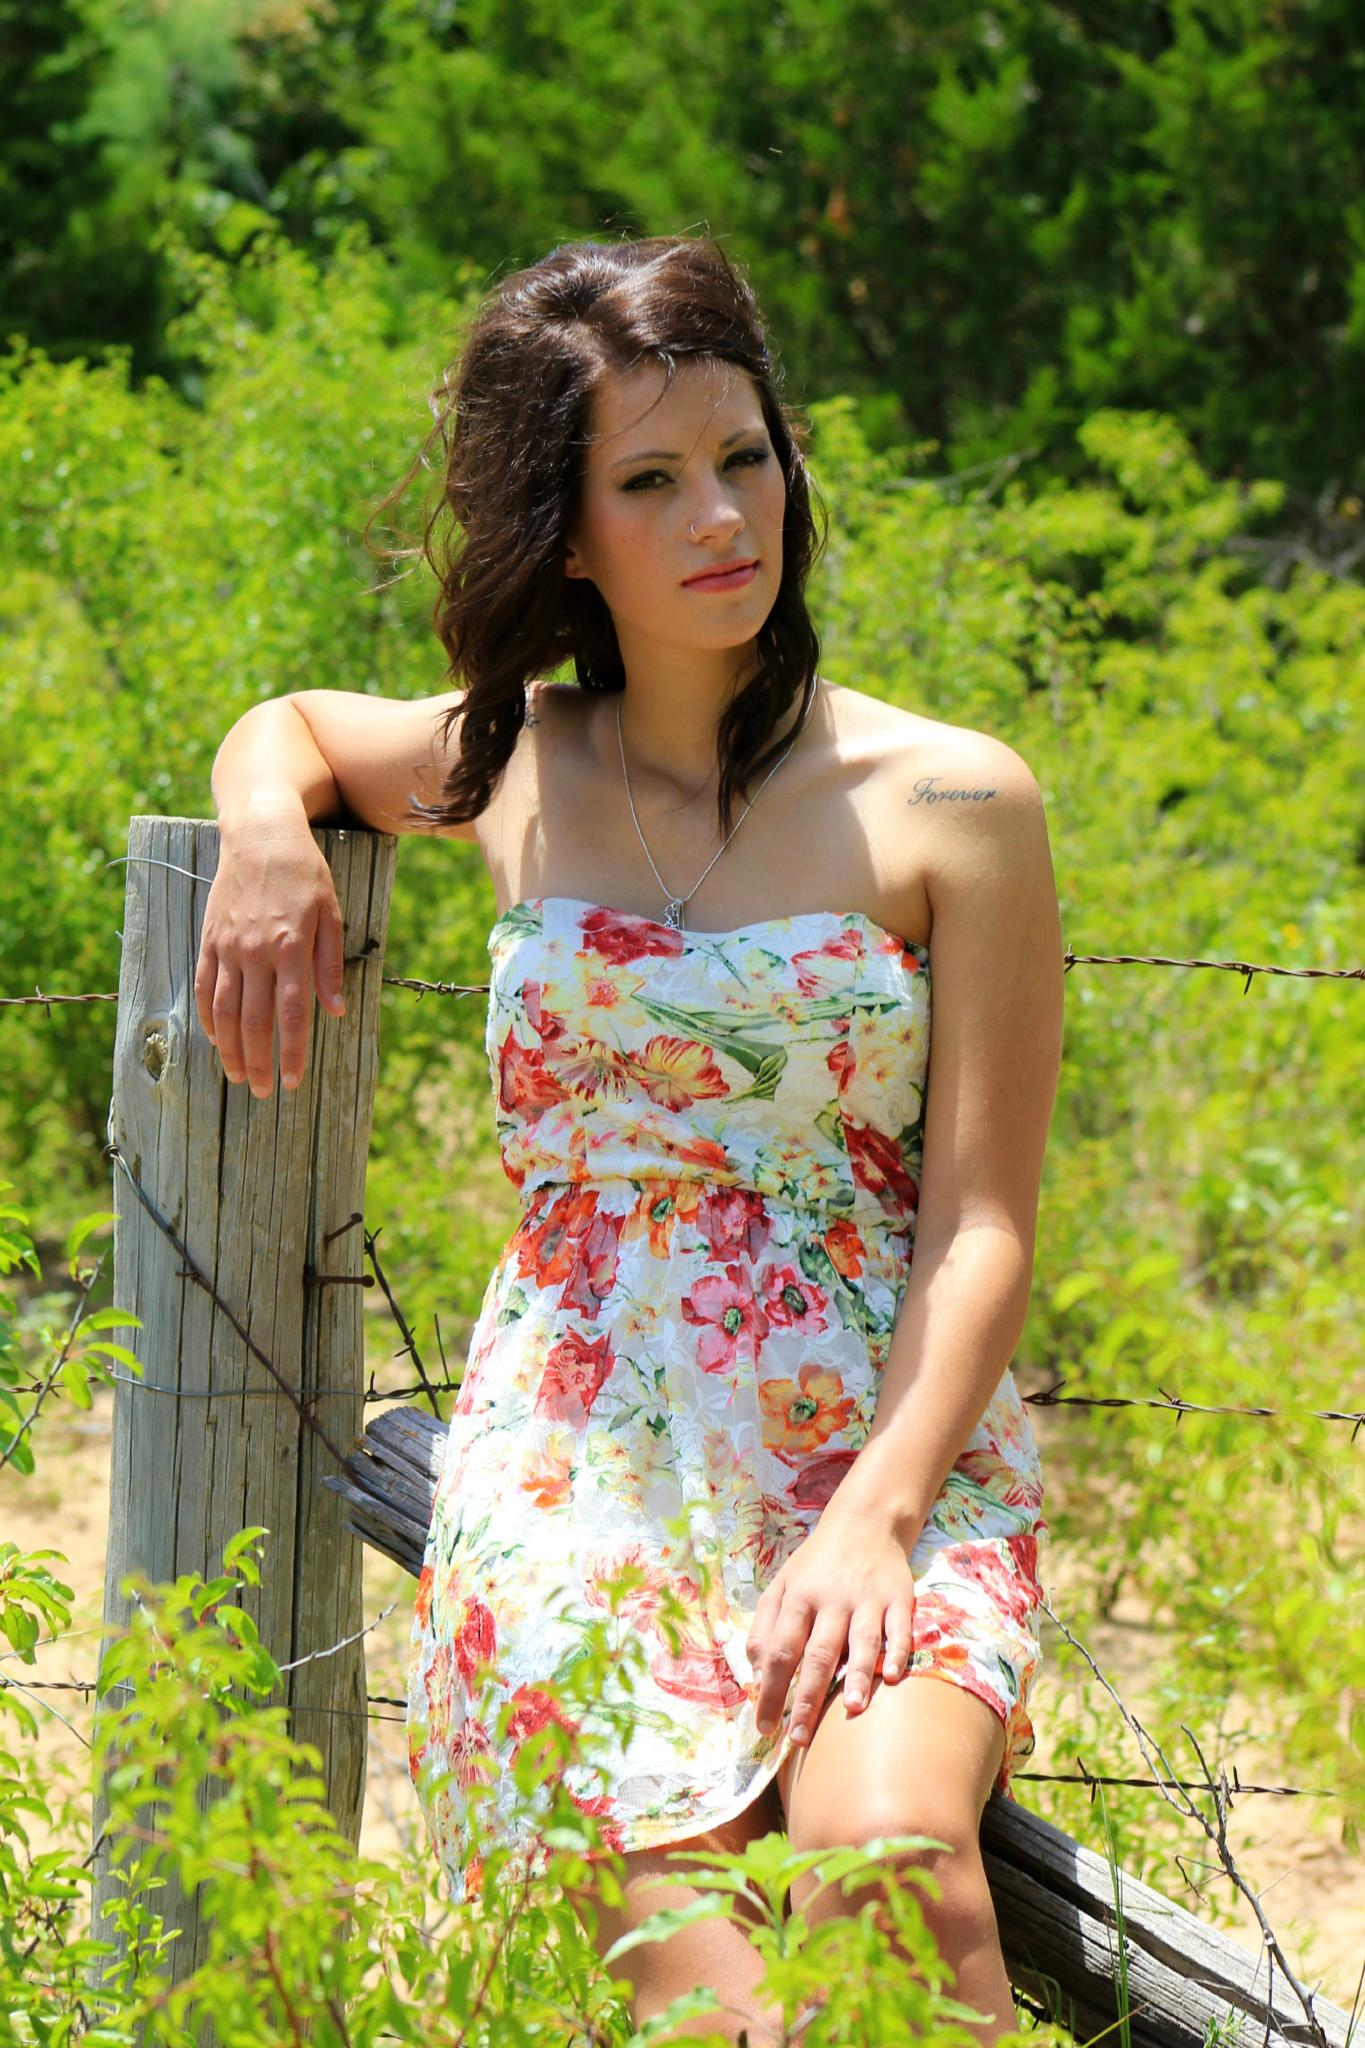 Sittin' On the Fence by Michelle Davis Photography